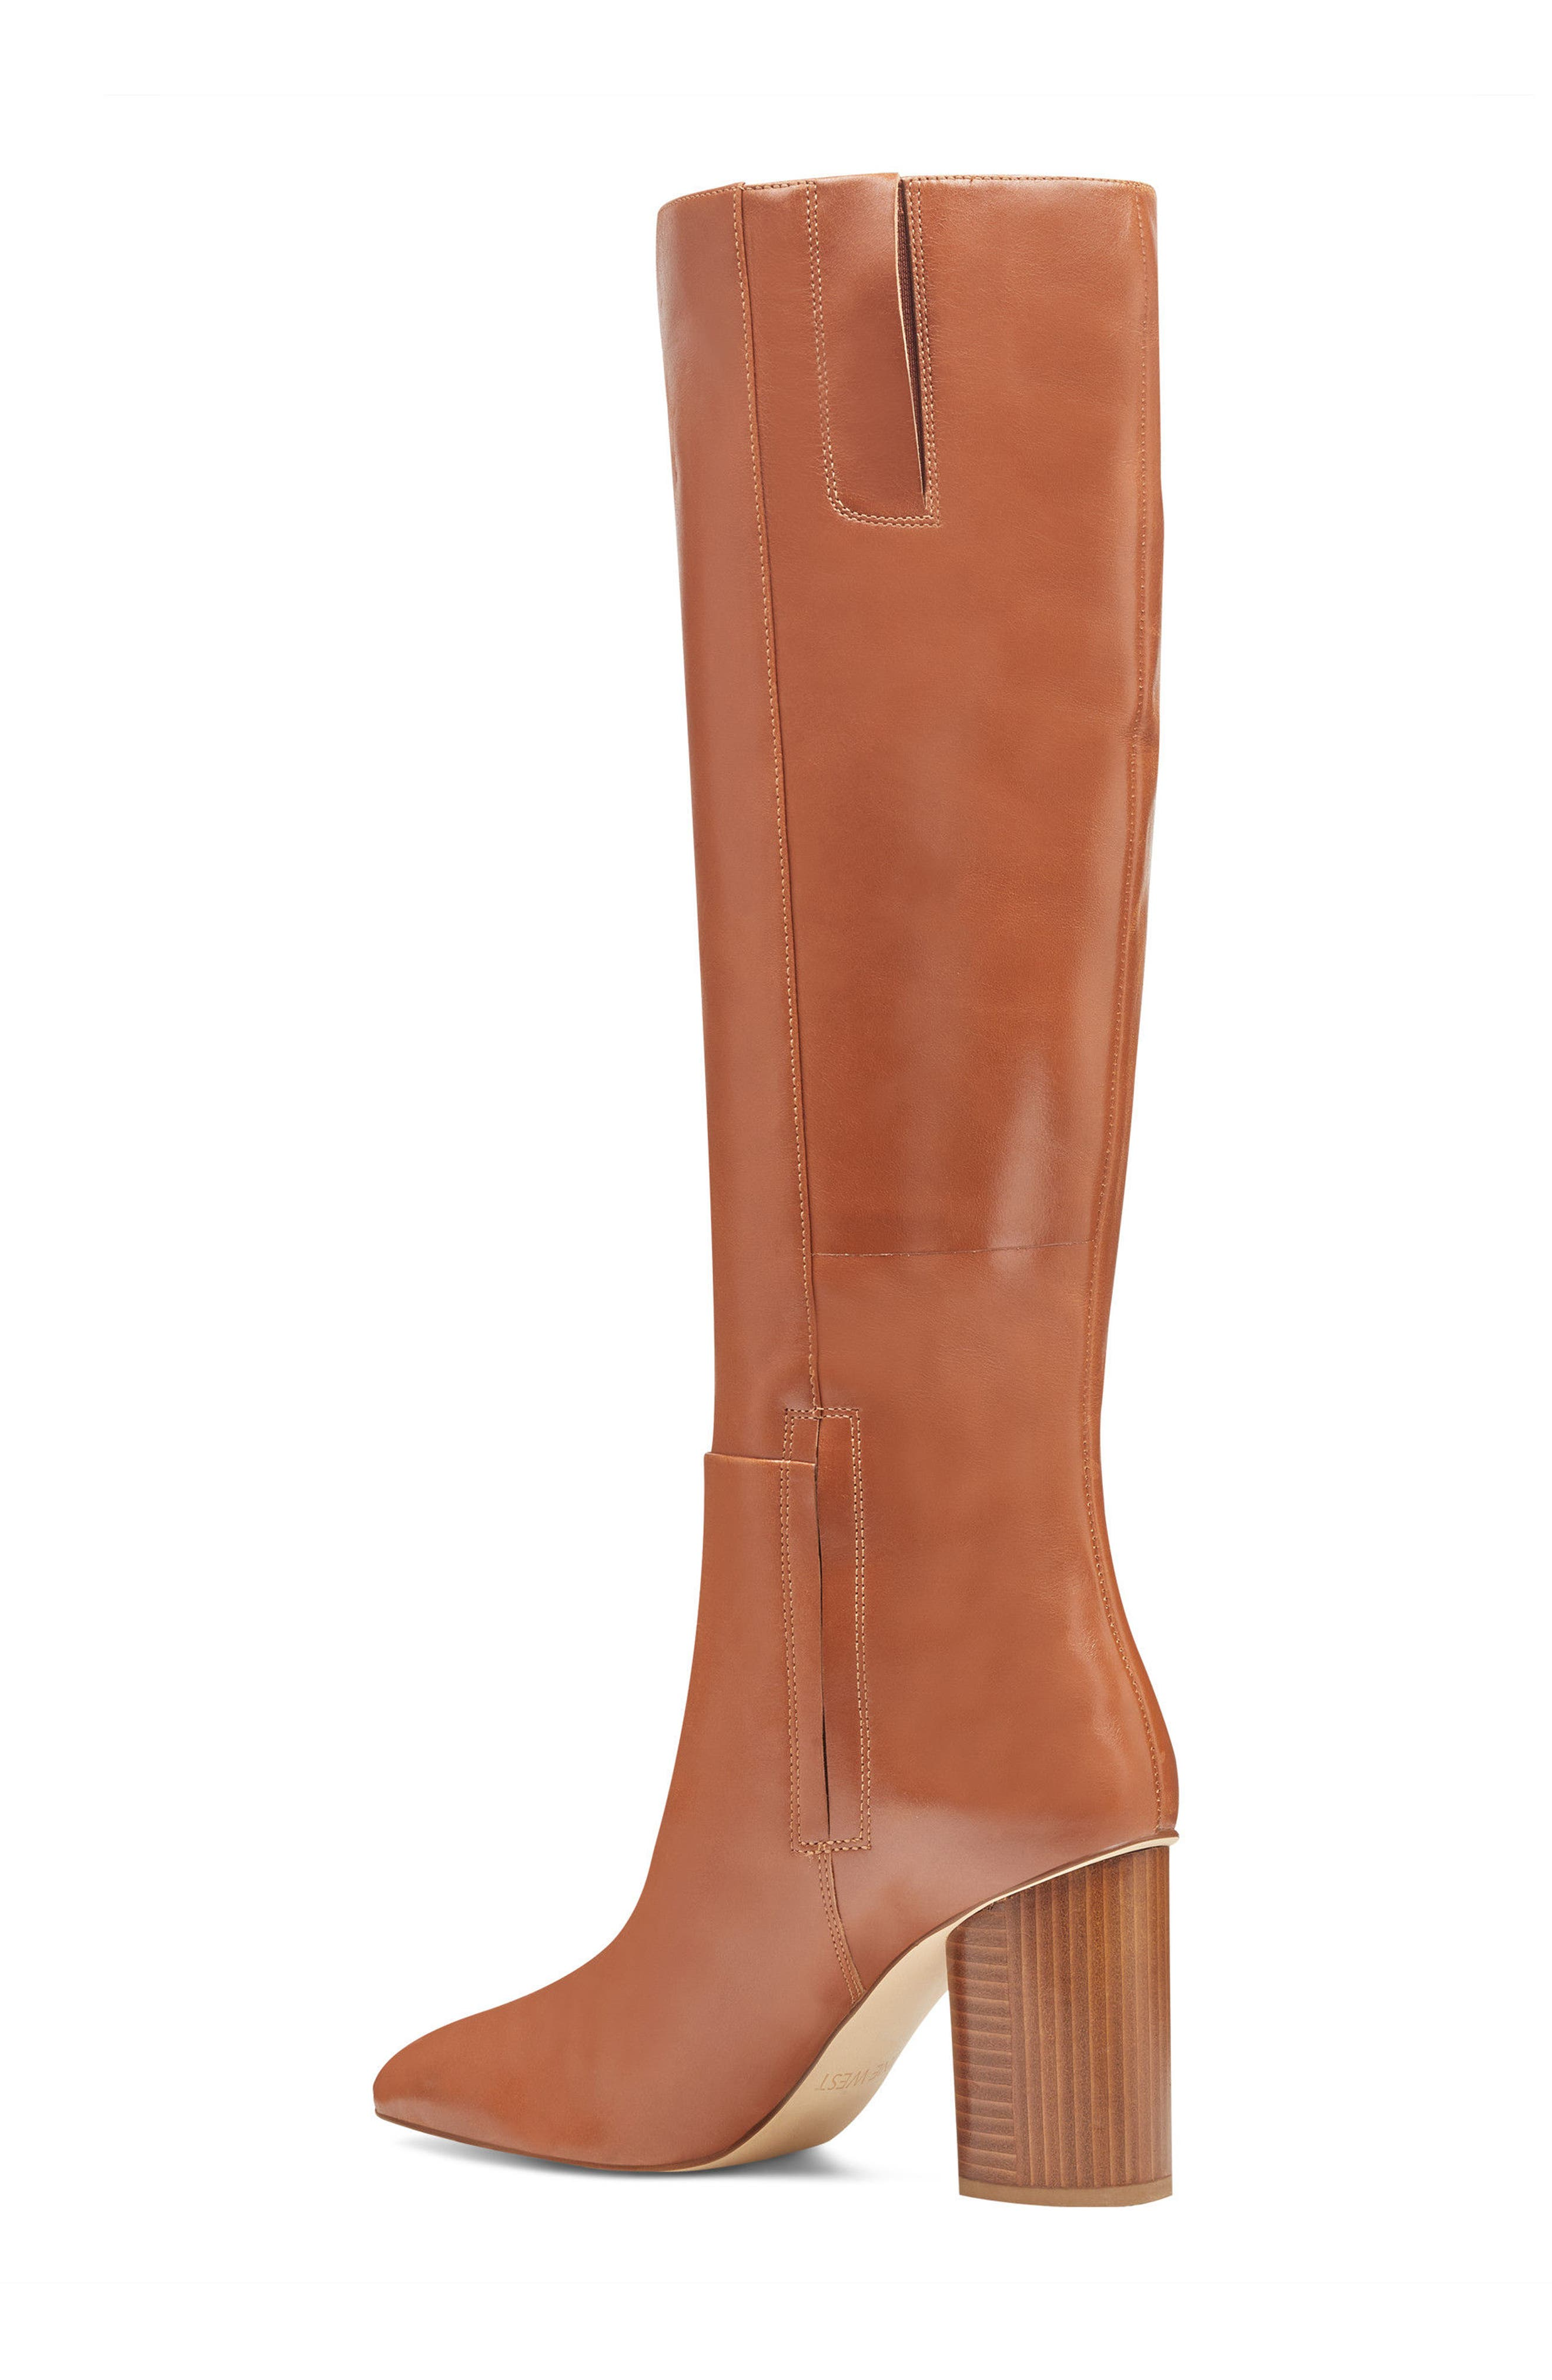 Christie Knee High Boot,                             Alternate thumbnail 2, color,                             Dark Natural Leather